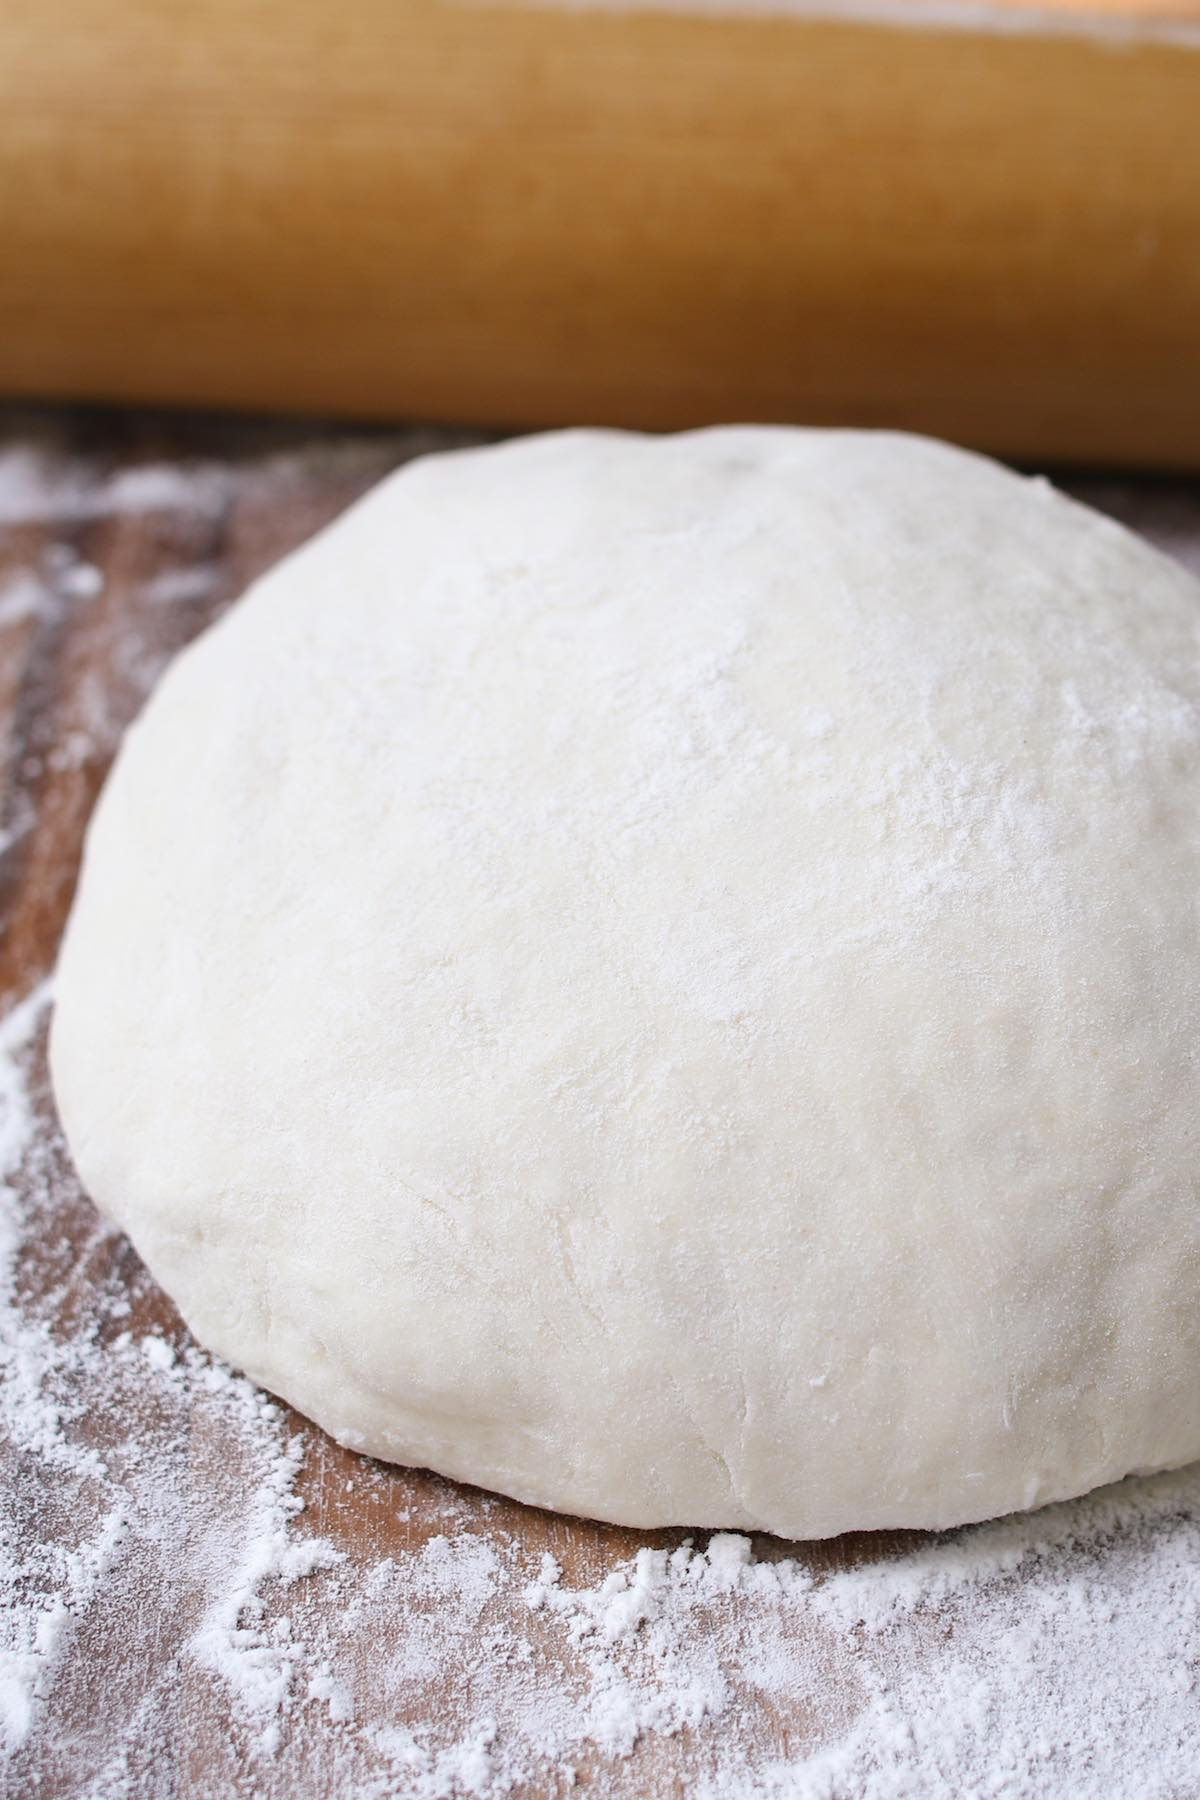 This Easy Pizza Dough Recipe makes a soft and fluffy pizza crust that's beyond addictive! It's the best homemade pizza dough that has been passed down through generations. It takes 10 minutes to prepare and made by hand with 6 simple ingredients!